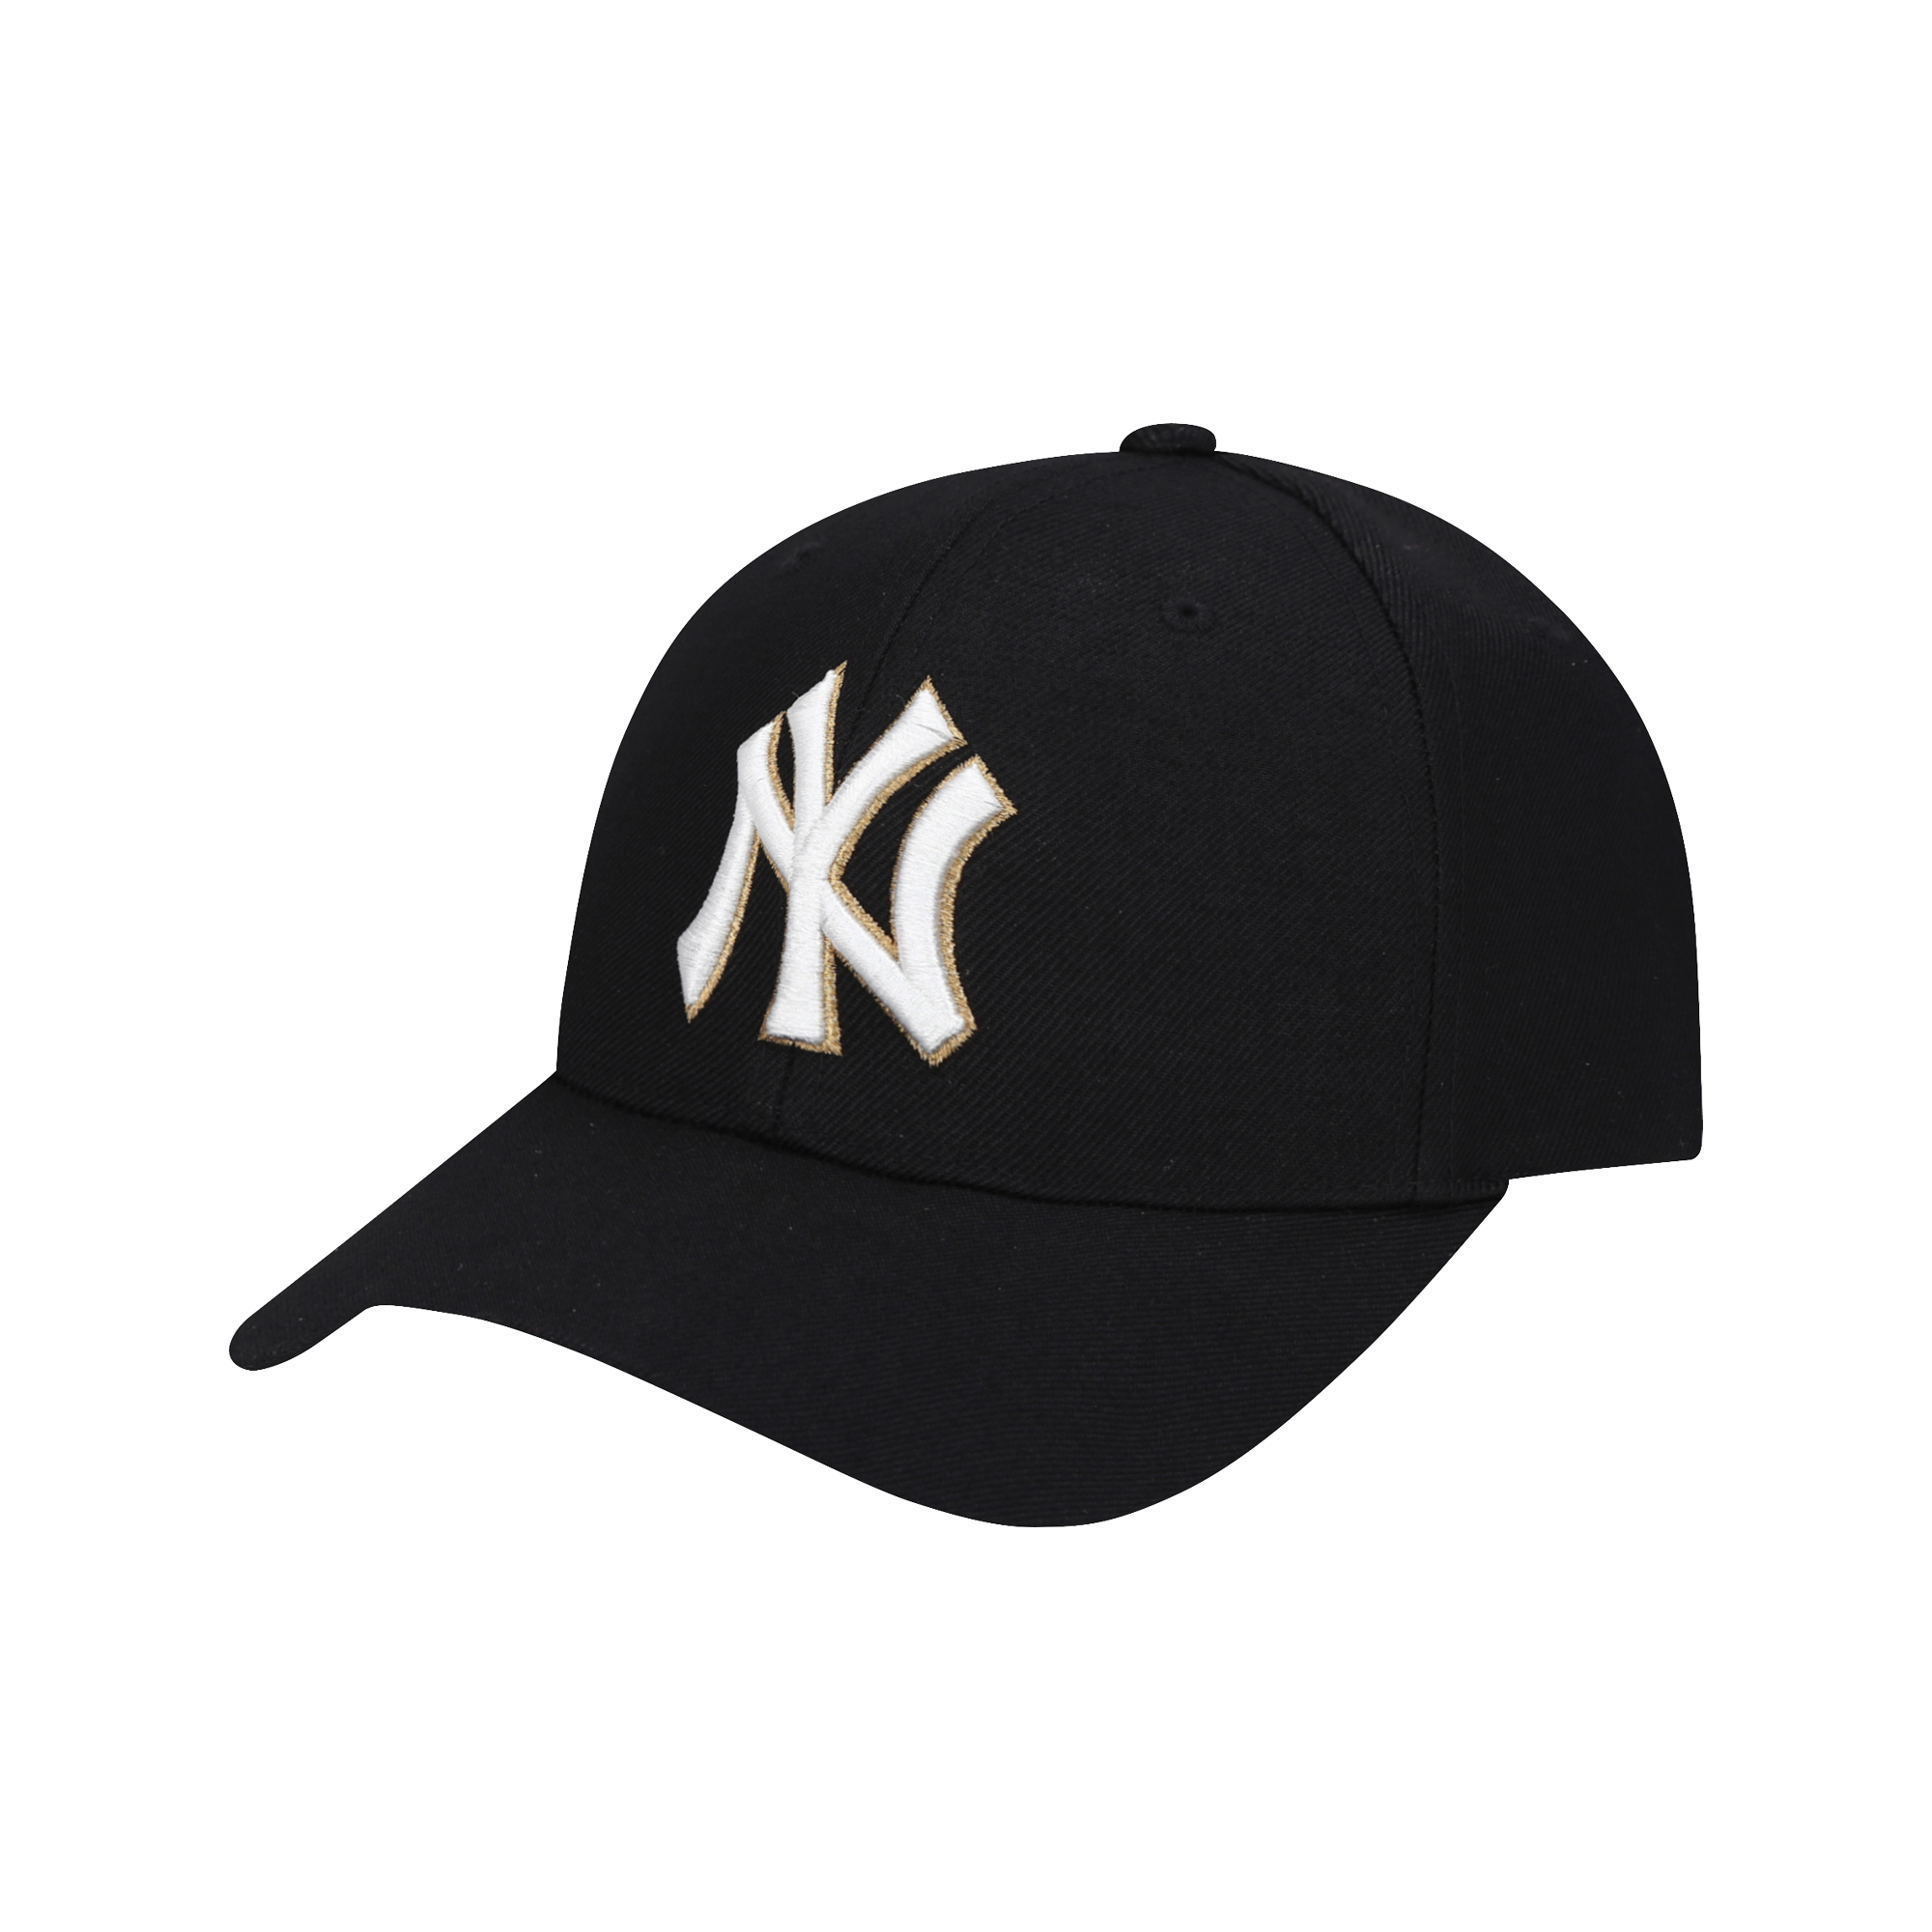 NEW YORK YANKEES TRIBAL UNDER VISOR EMBROIDERY CURVED CAP